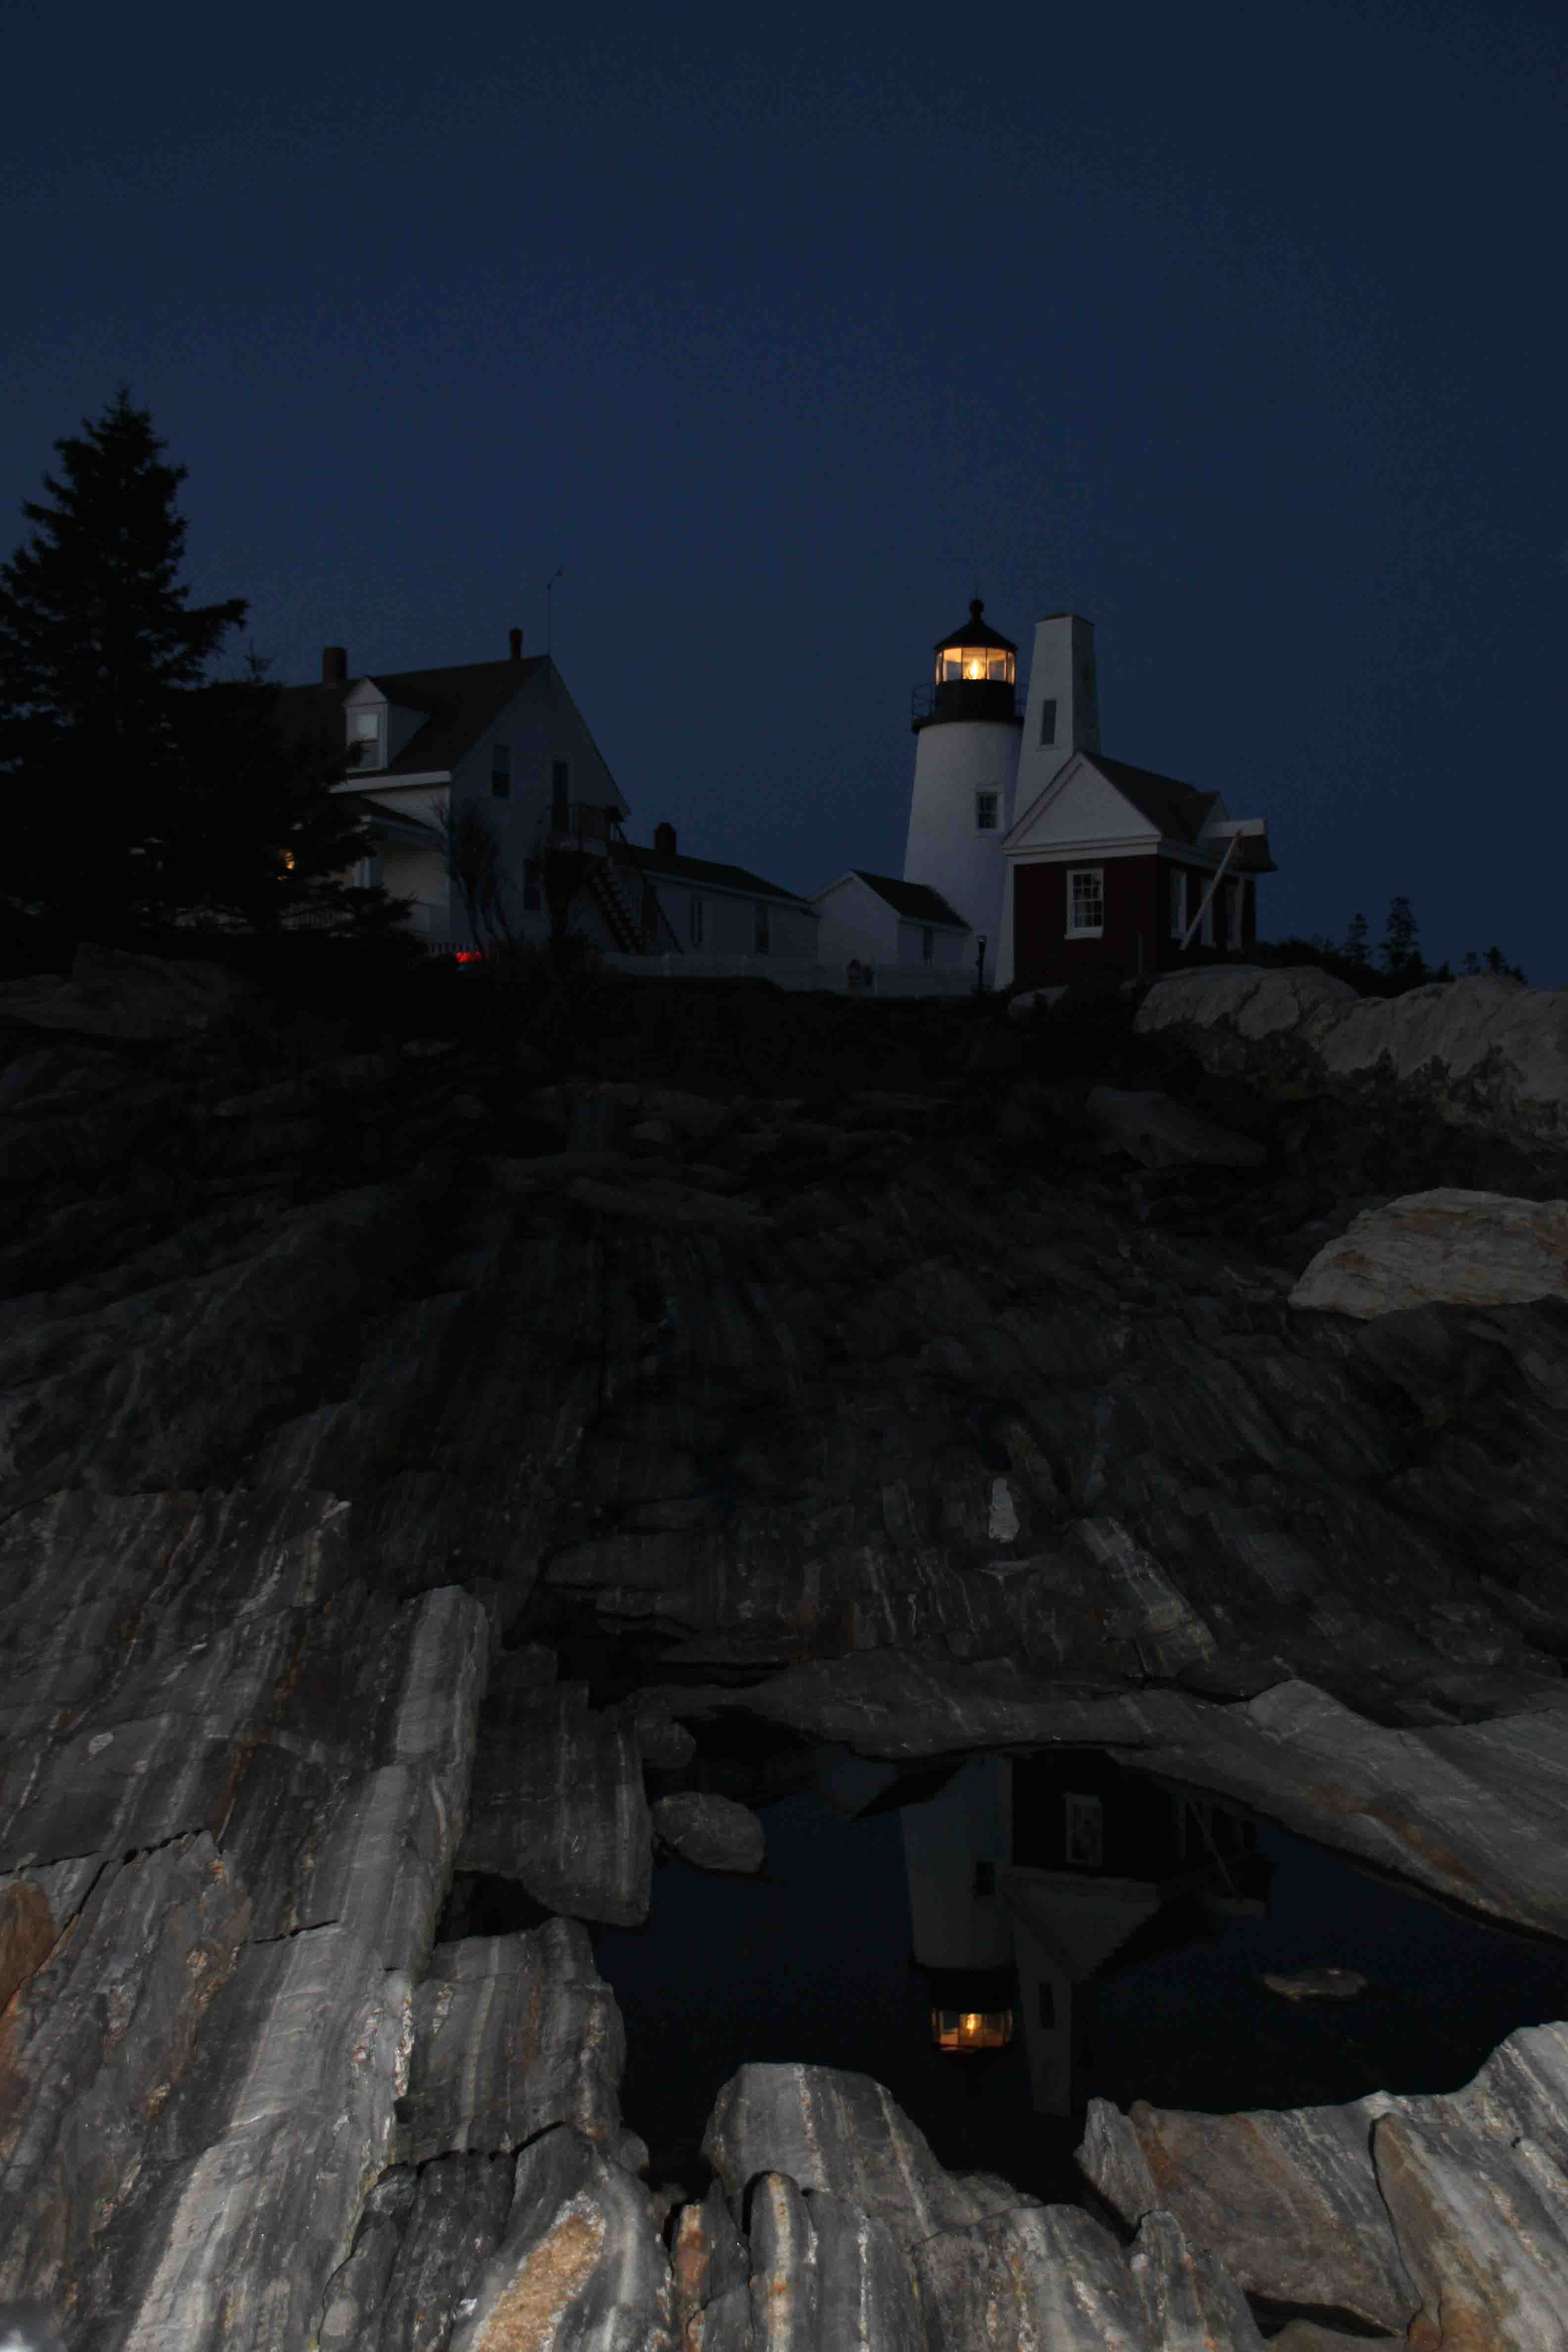 pemaquid point lighthouse reflecting in water puddle